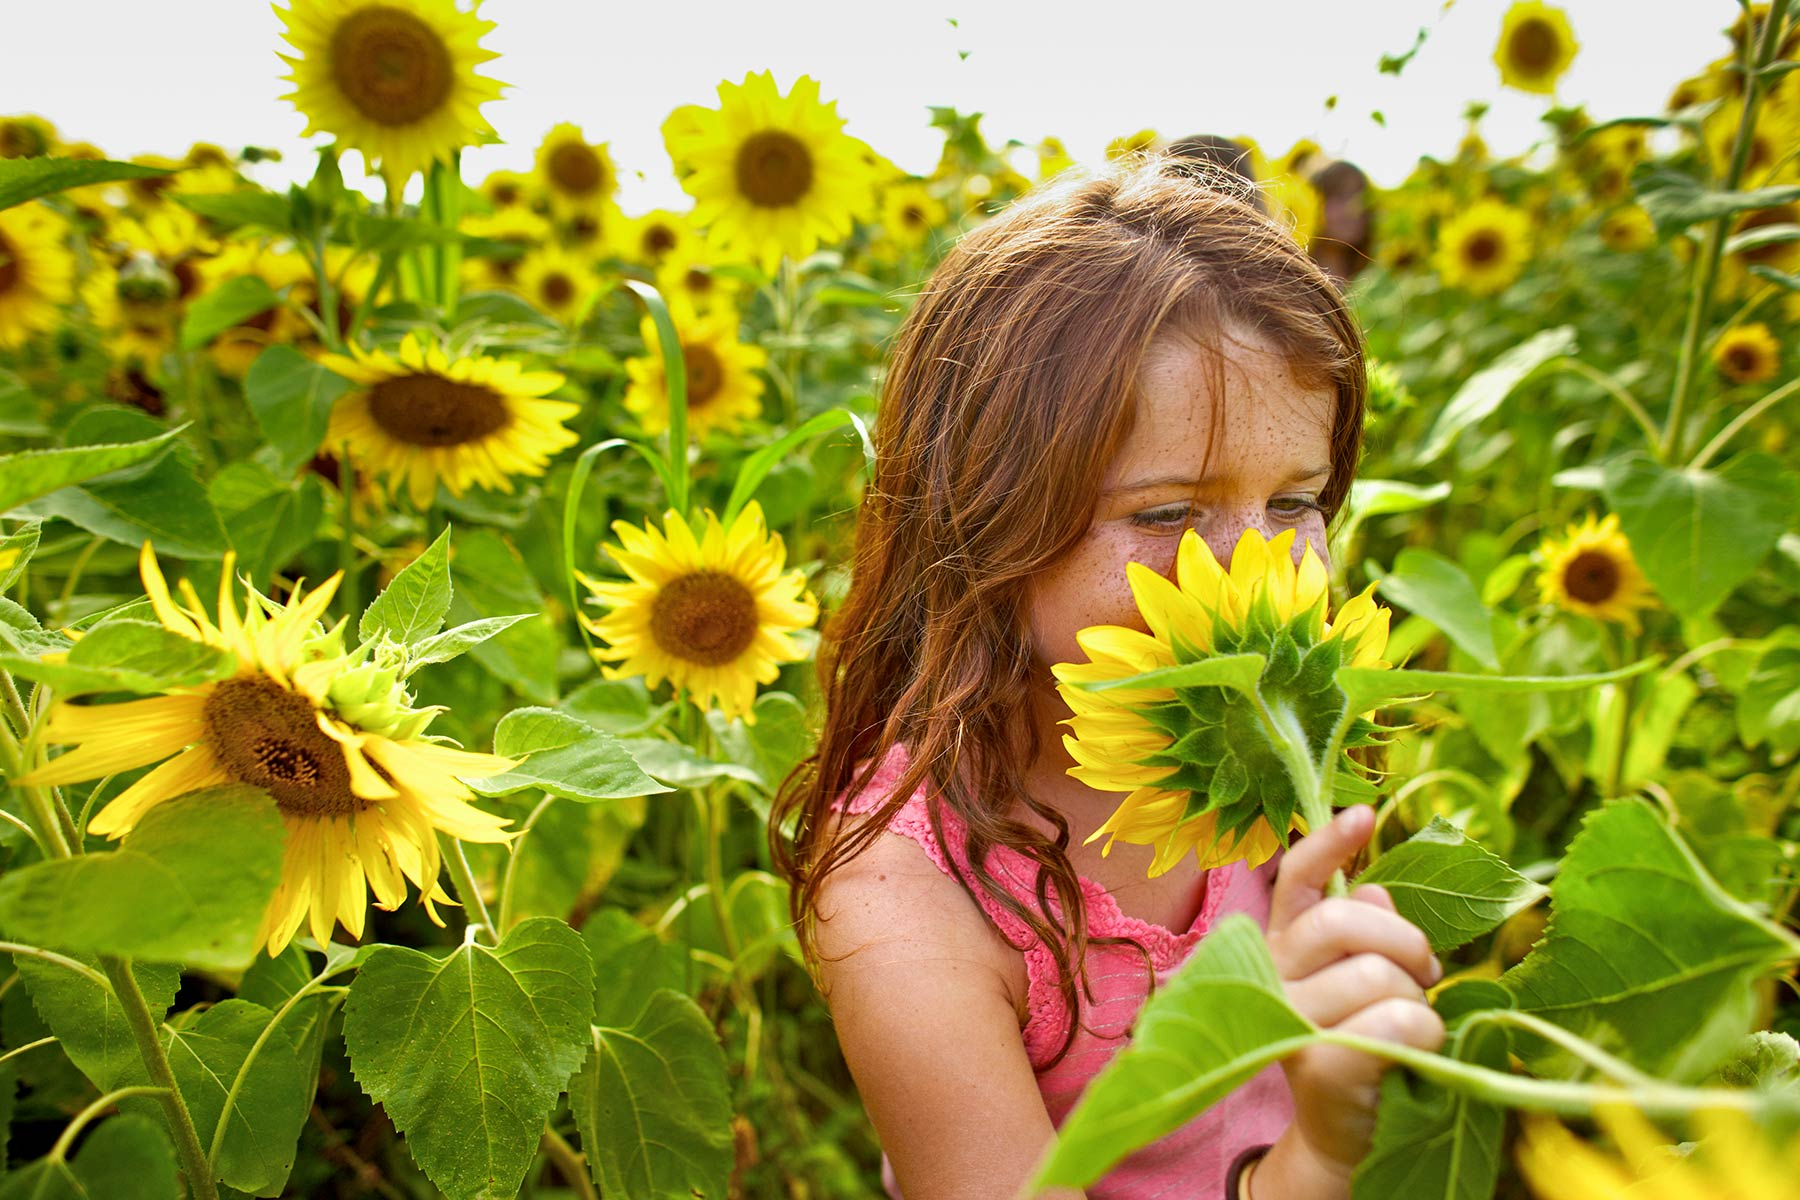 A-portrait-of-a-little-girl-smelling-a-sunflower-in-the-middle-of-a-sunflower-field